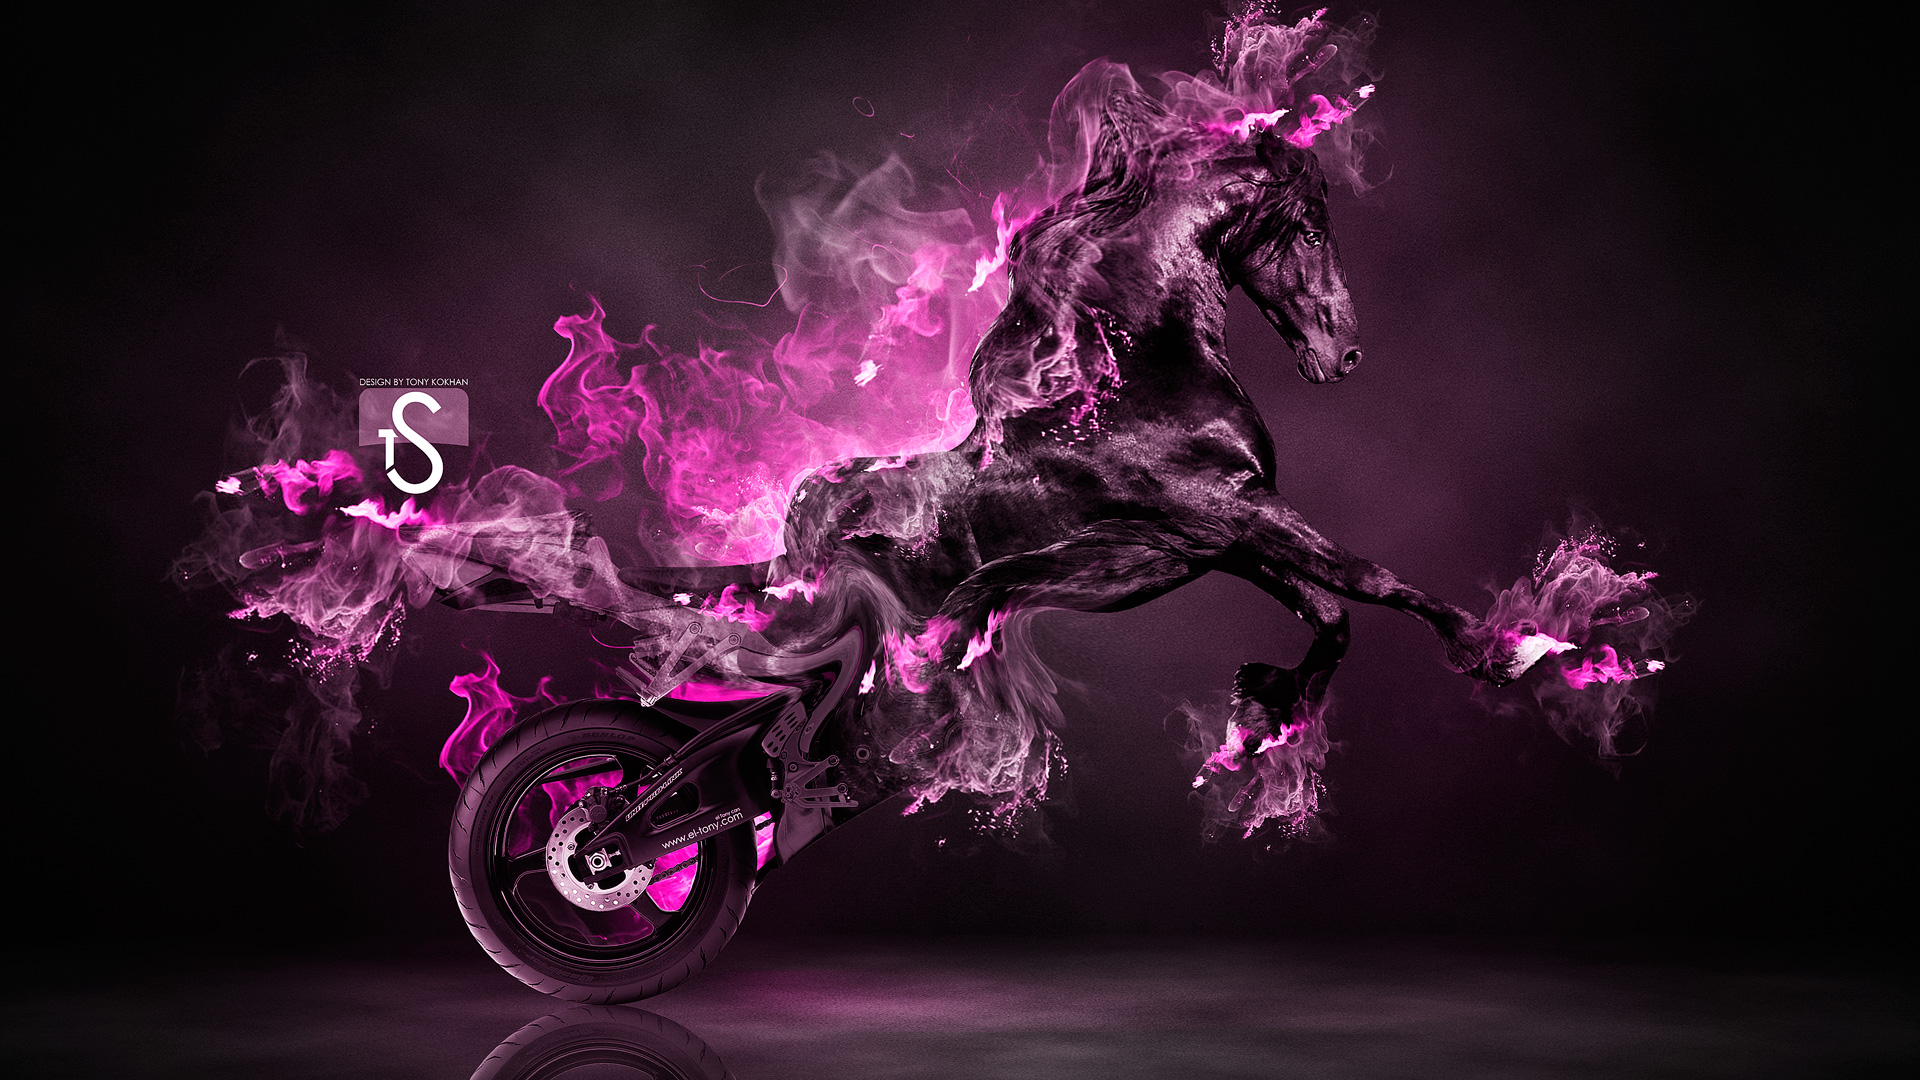 neon flame motorcycle wallpaper - photo #31